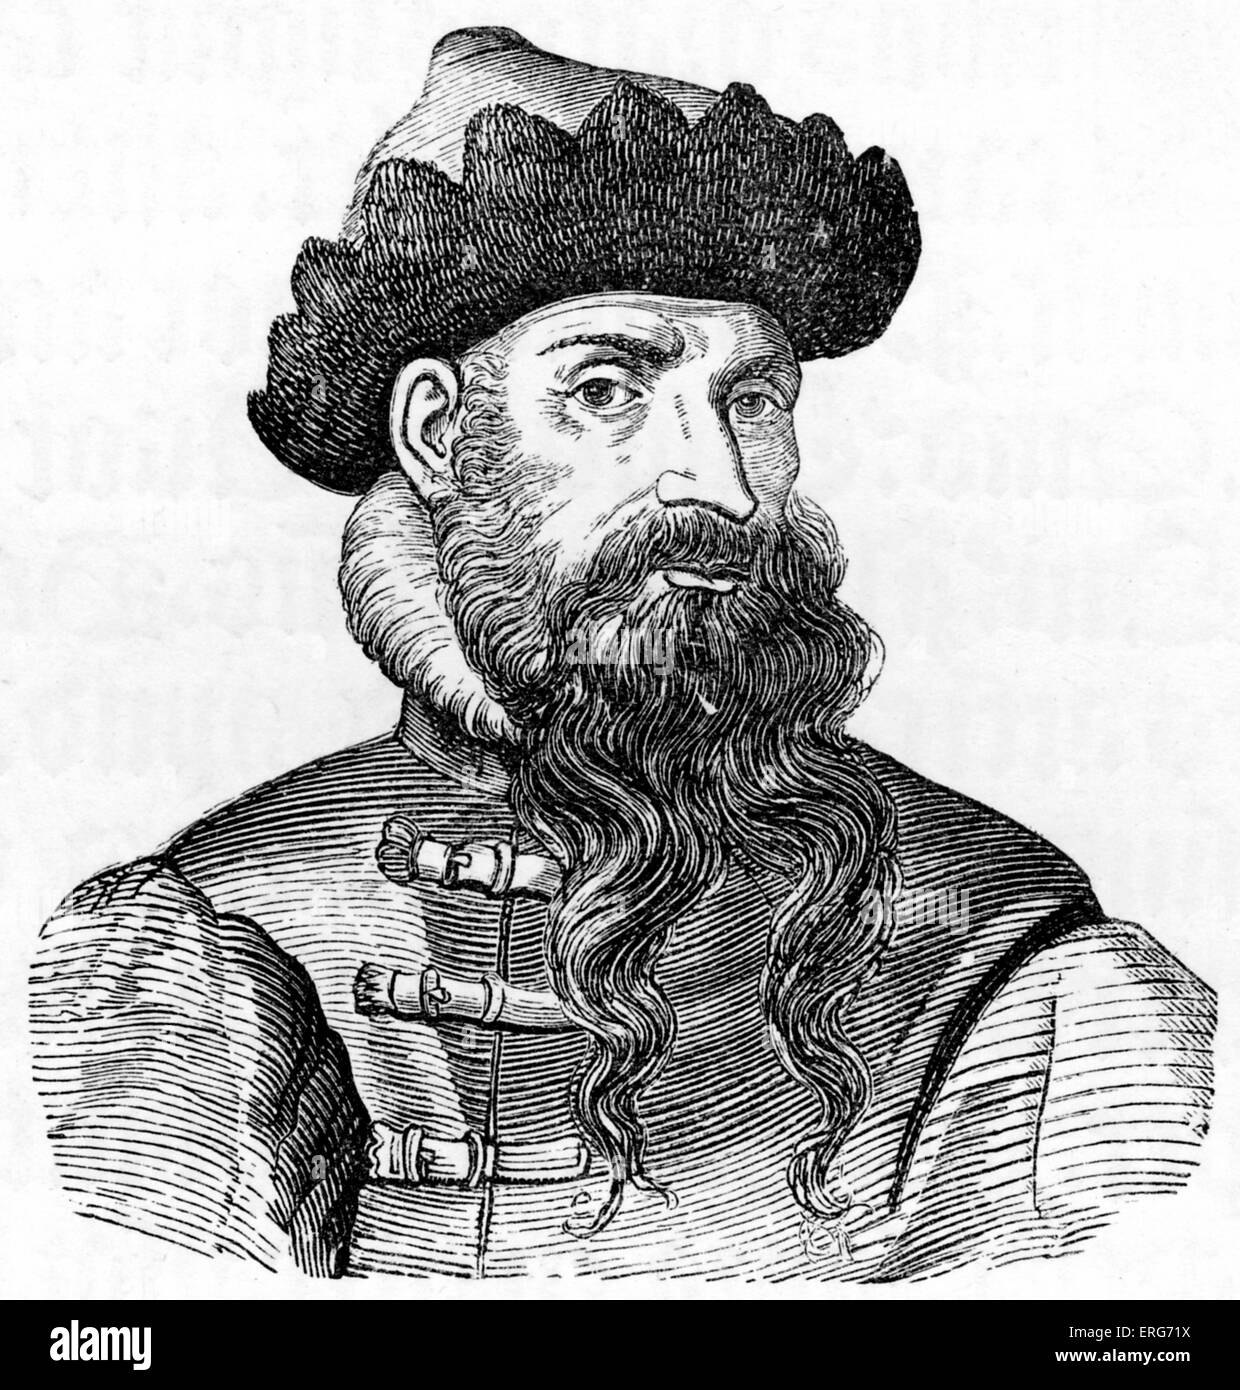 Johannes Gutenberg From A Sixteenth Century Engraving Inventor Of The Printing Press C 1398 3 February 1468